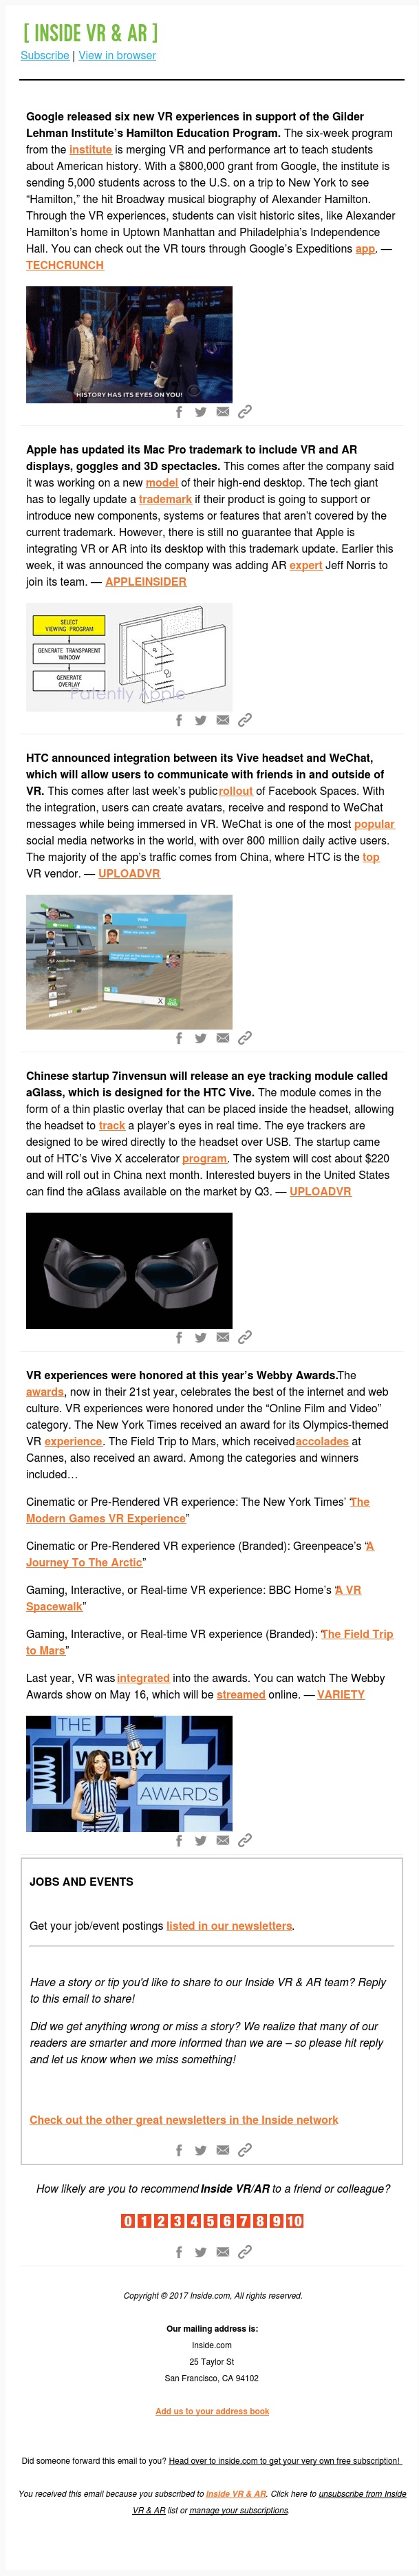 Google releases new VR tours / Apple makes trademark change / Vive integrates with WeChat